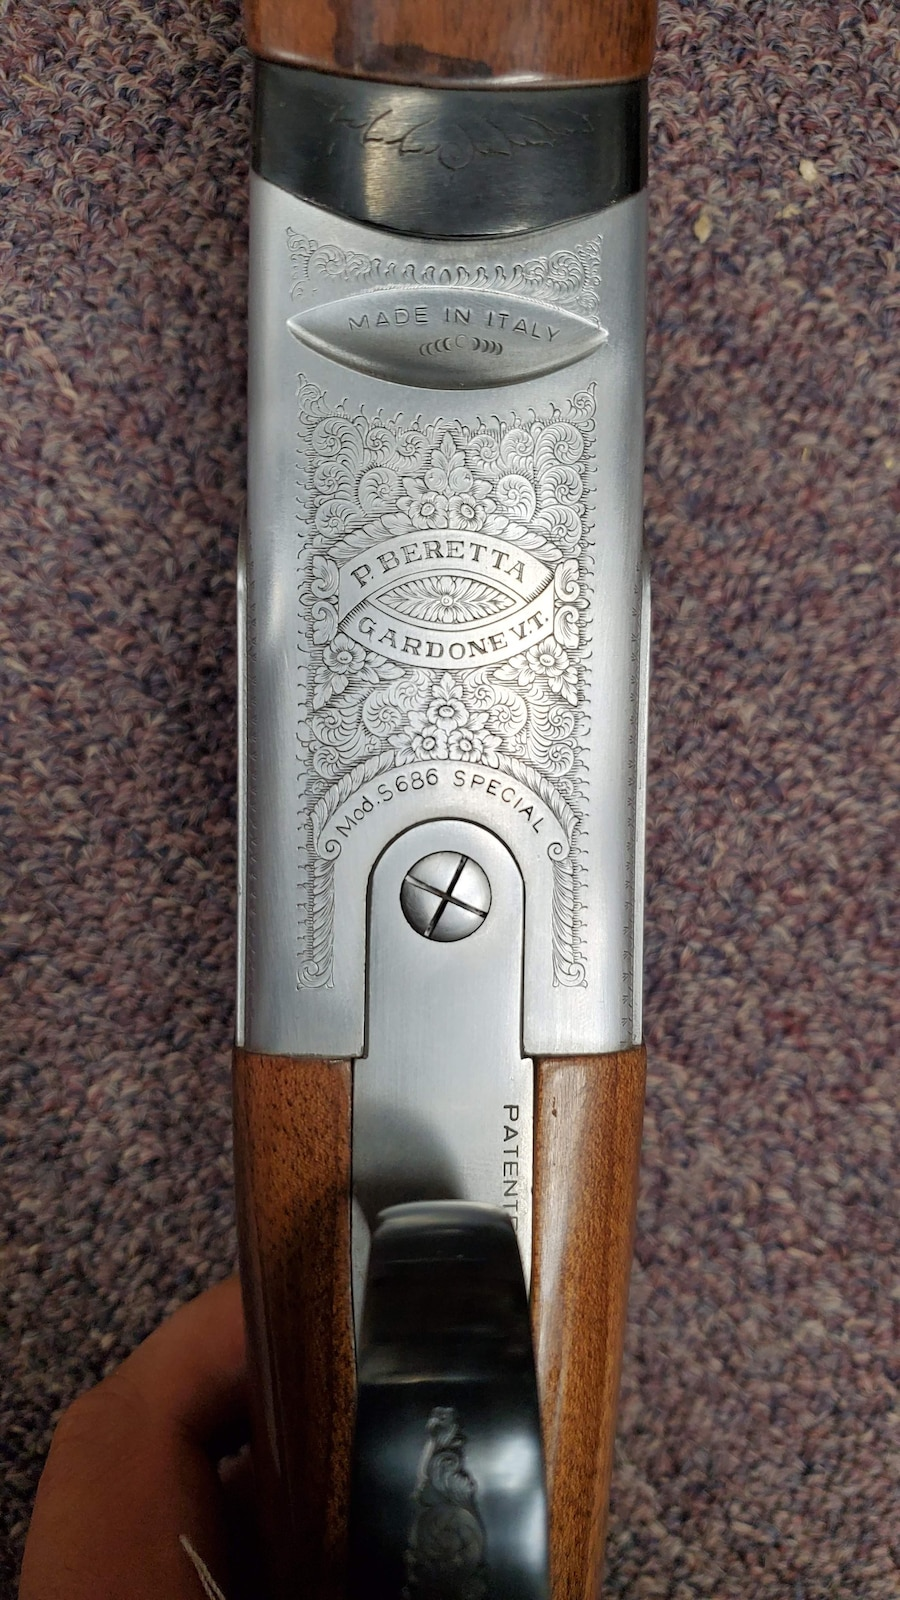 BERETTA s686 special edition made in italy